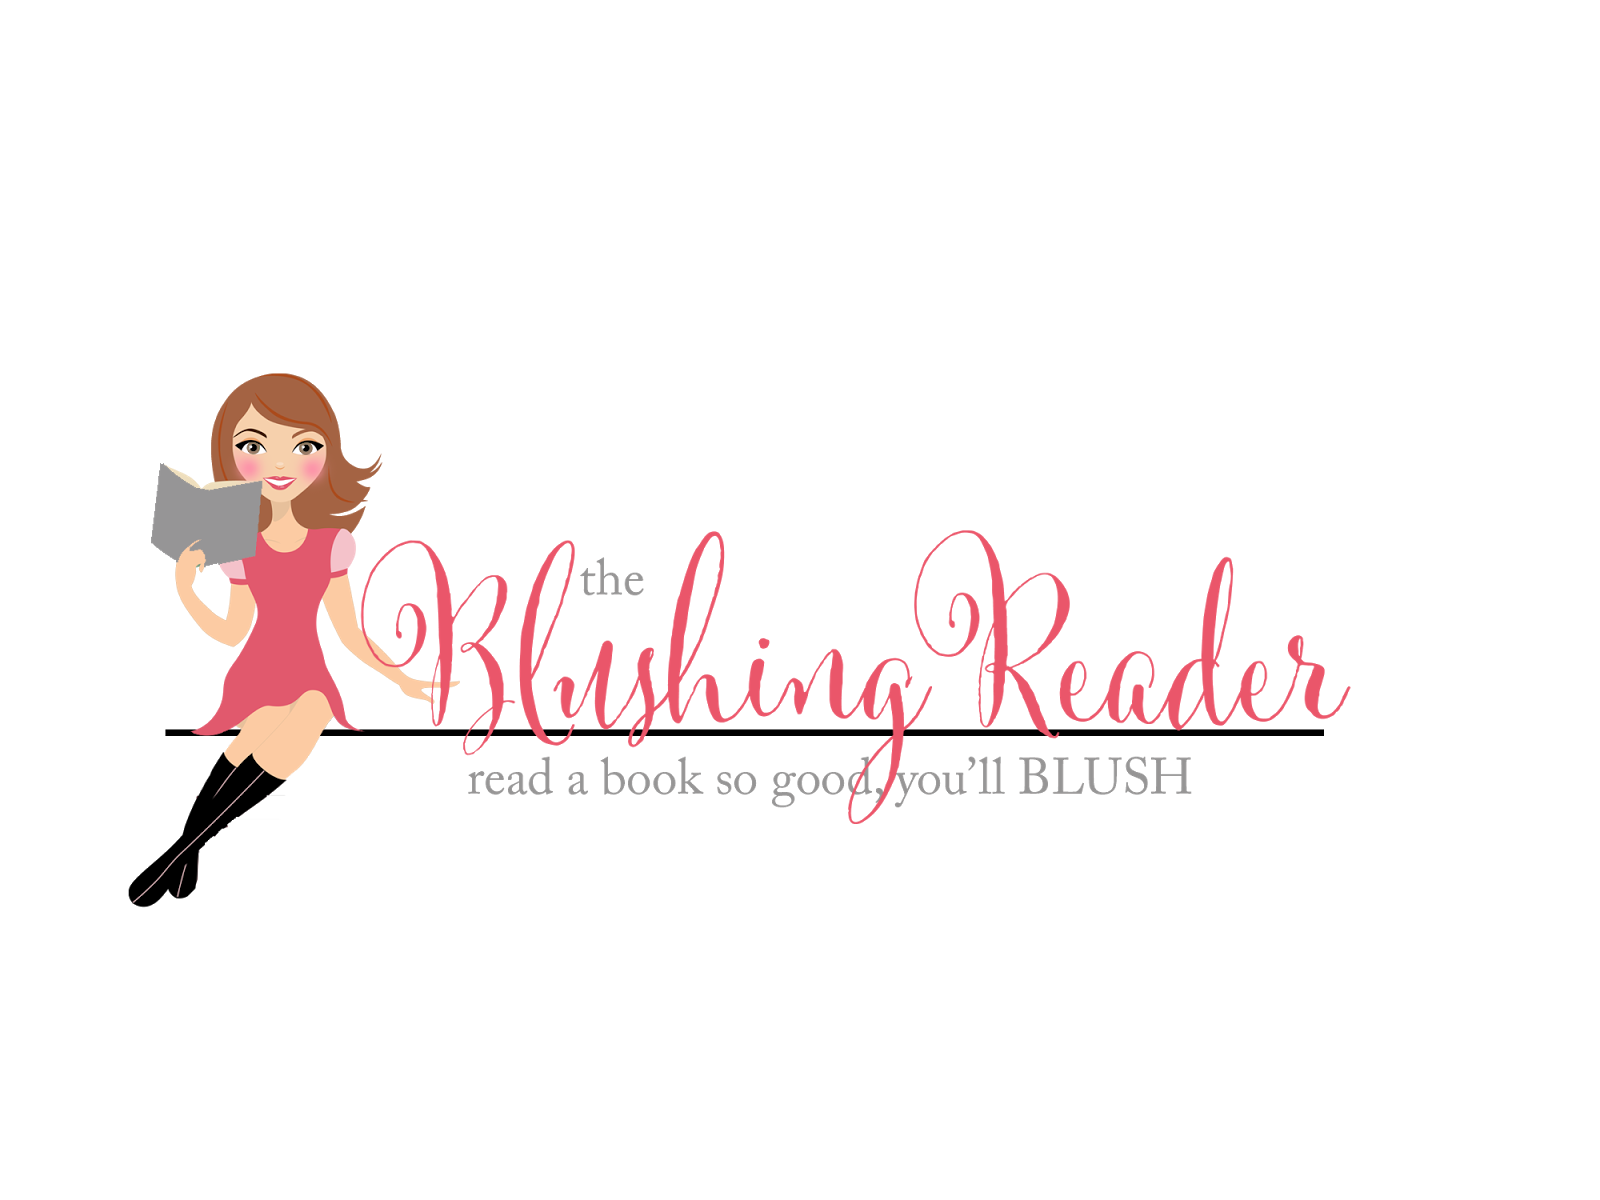 https://www.facebook.com/BlushingReader?fref=ts&ref=br_tf